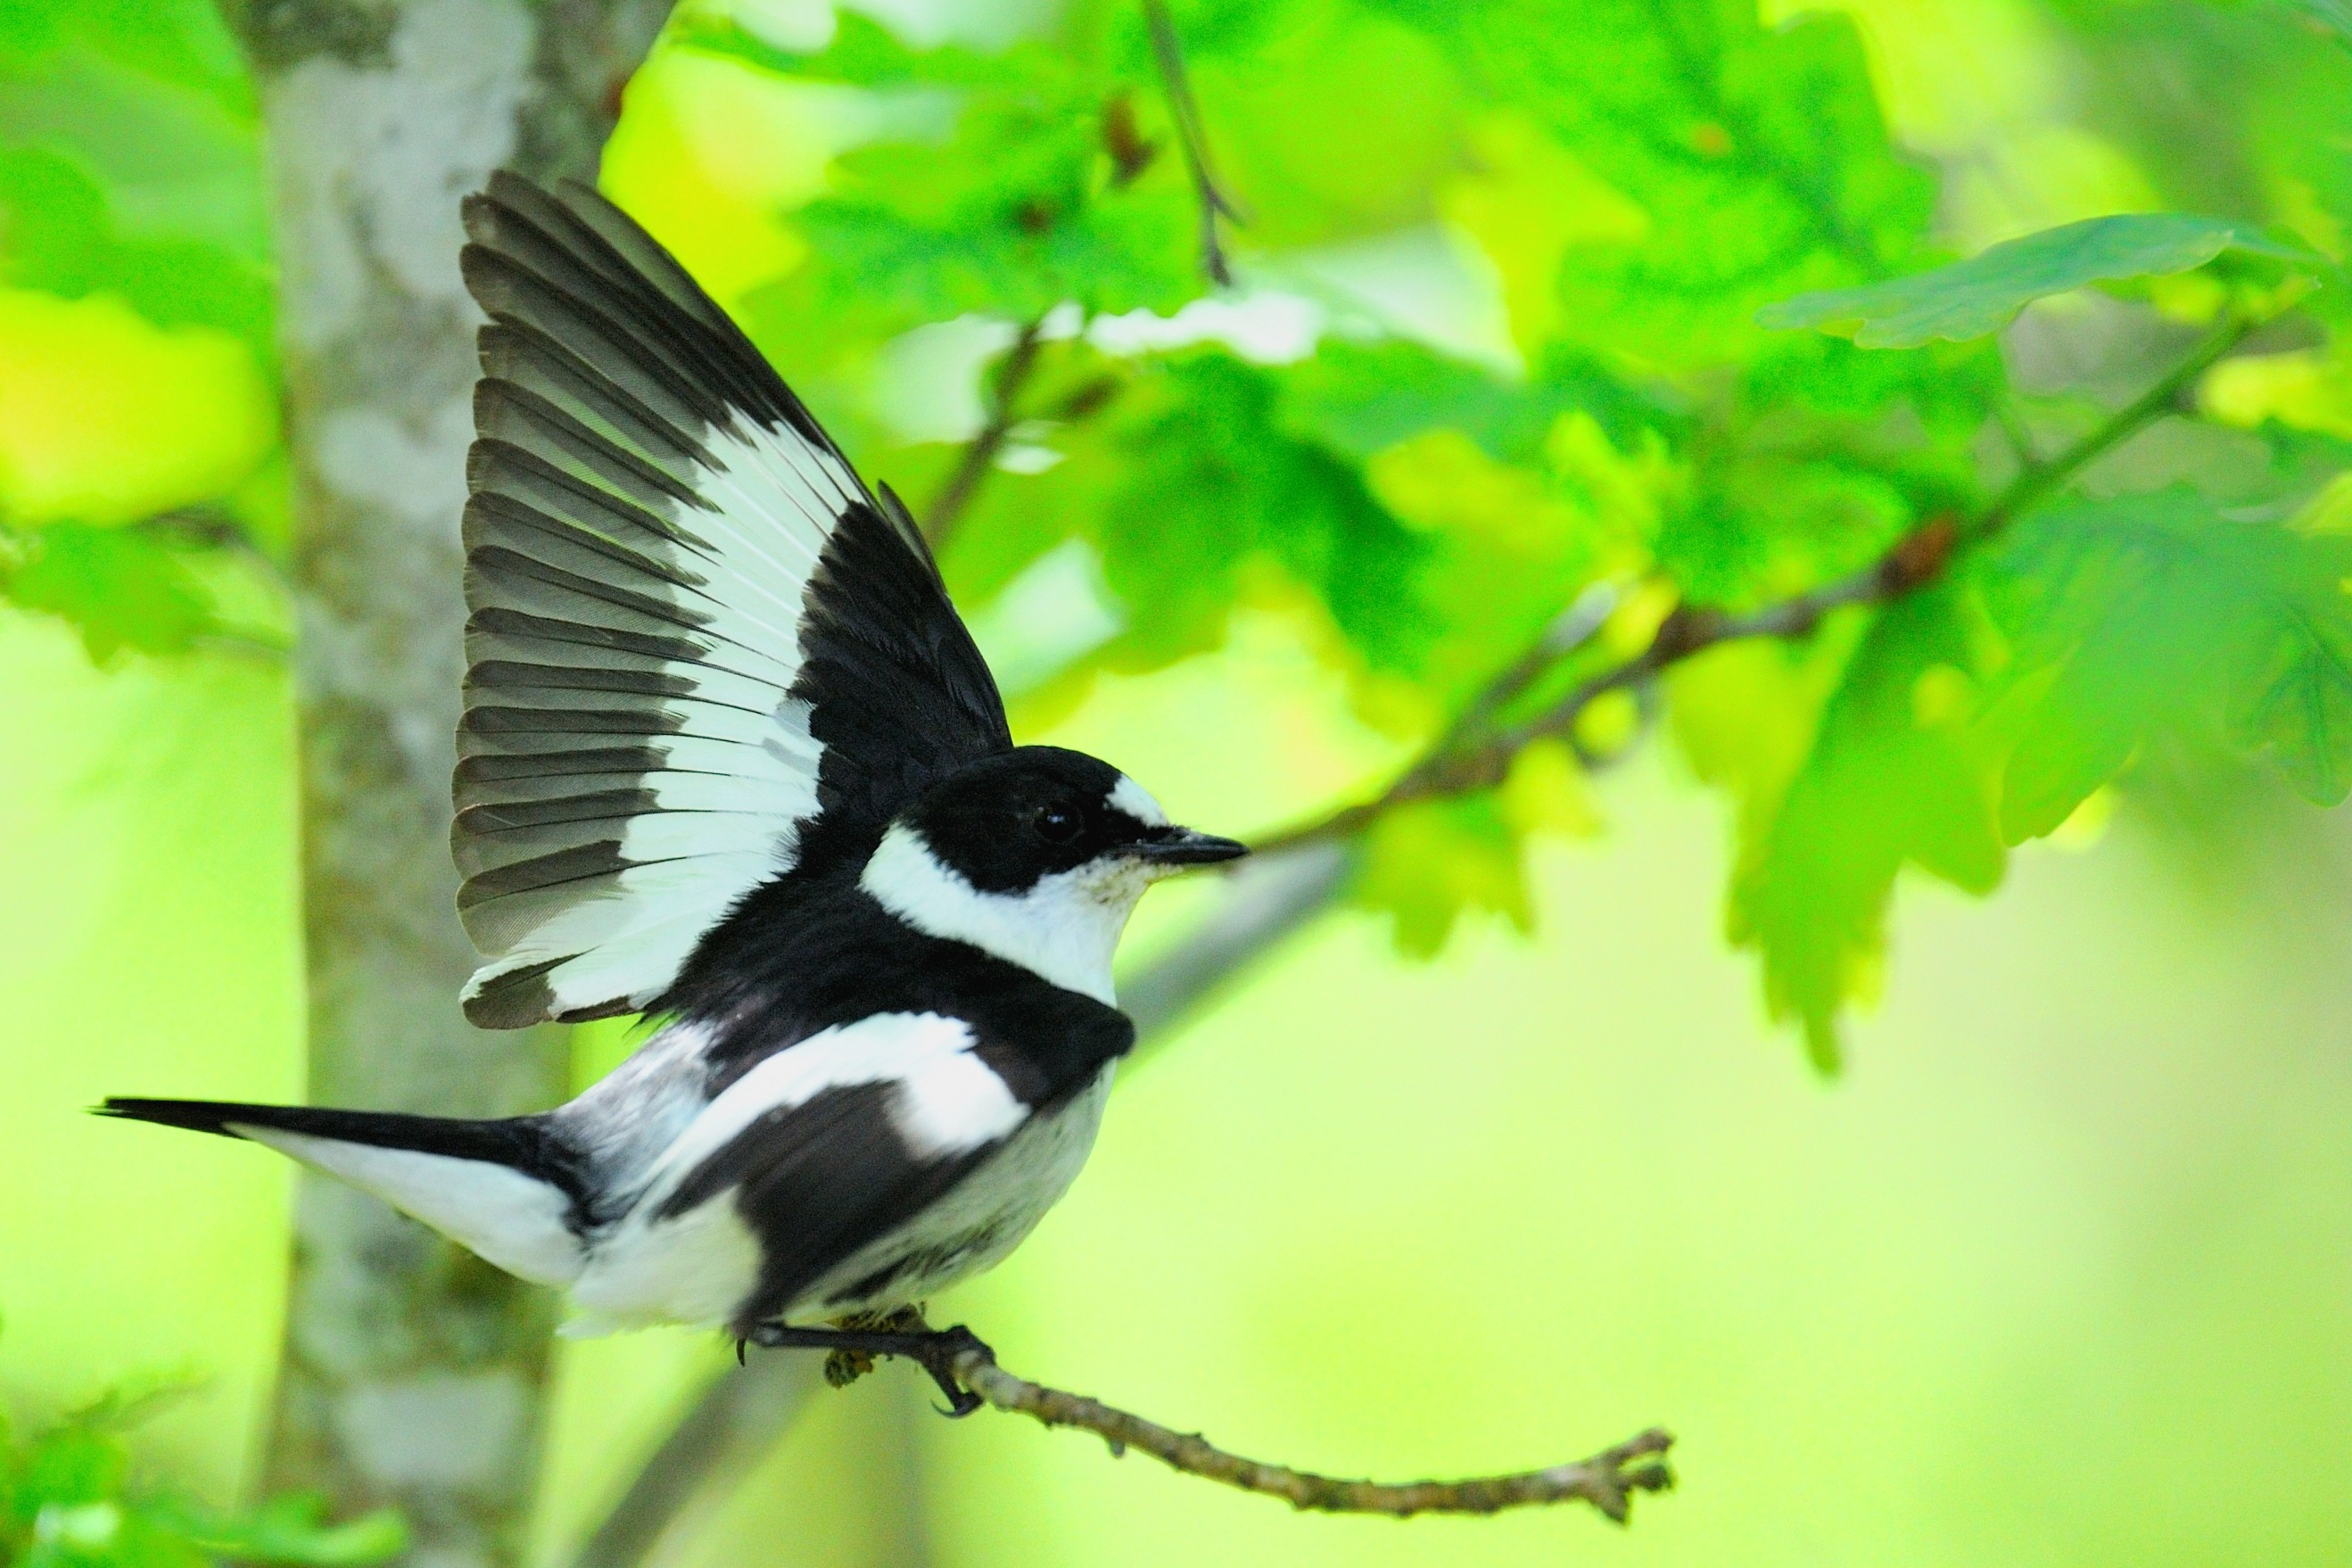 A male collared flycatcher displays its white plumage patches to its mate